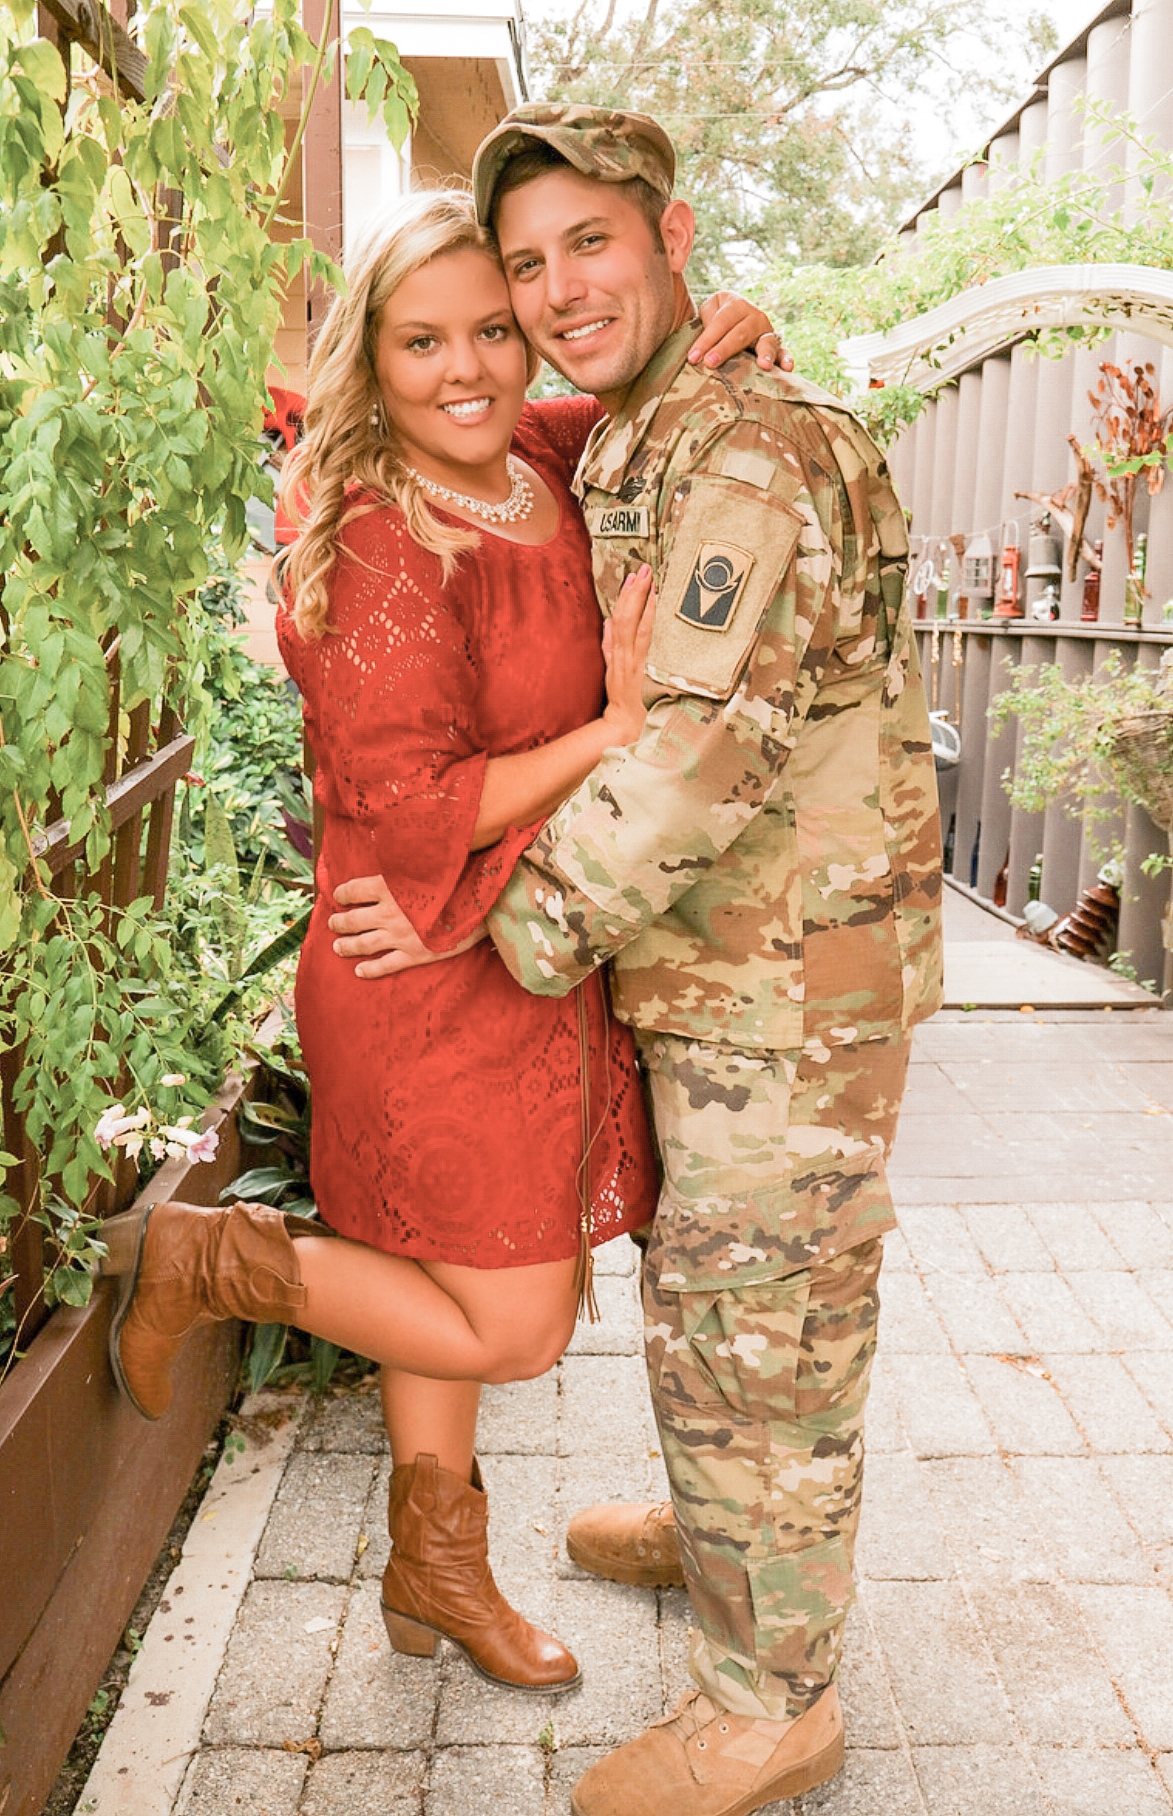 Emerging Doctor and Military Wife, Jenna Cuccionilli